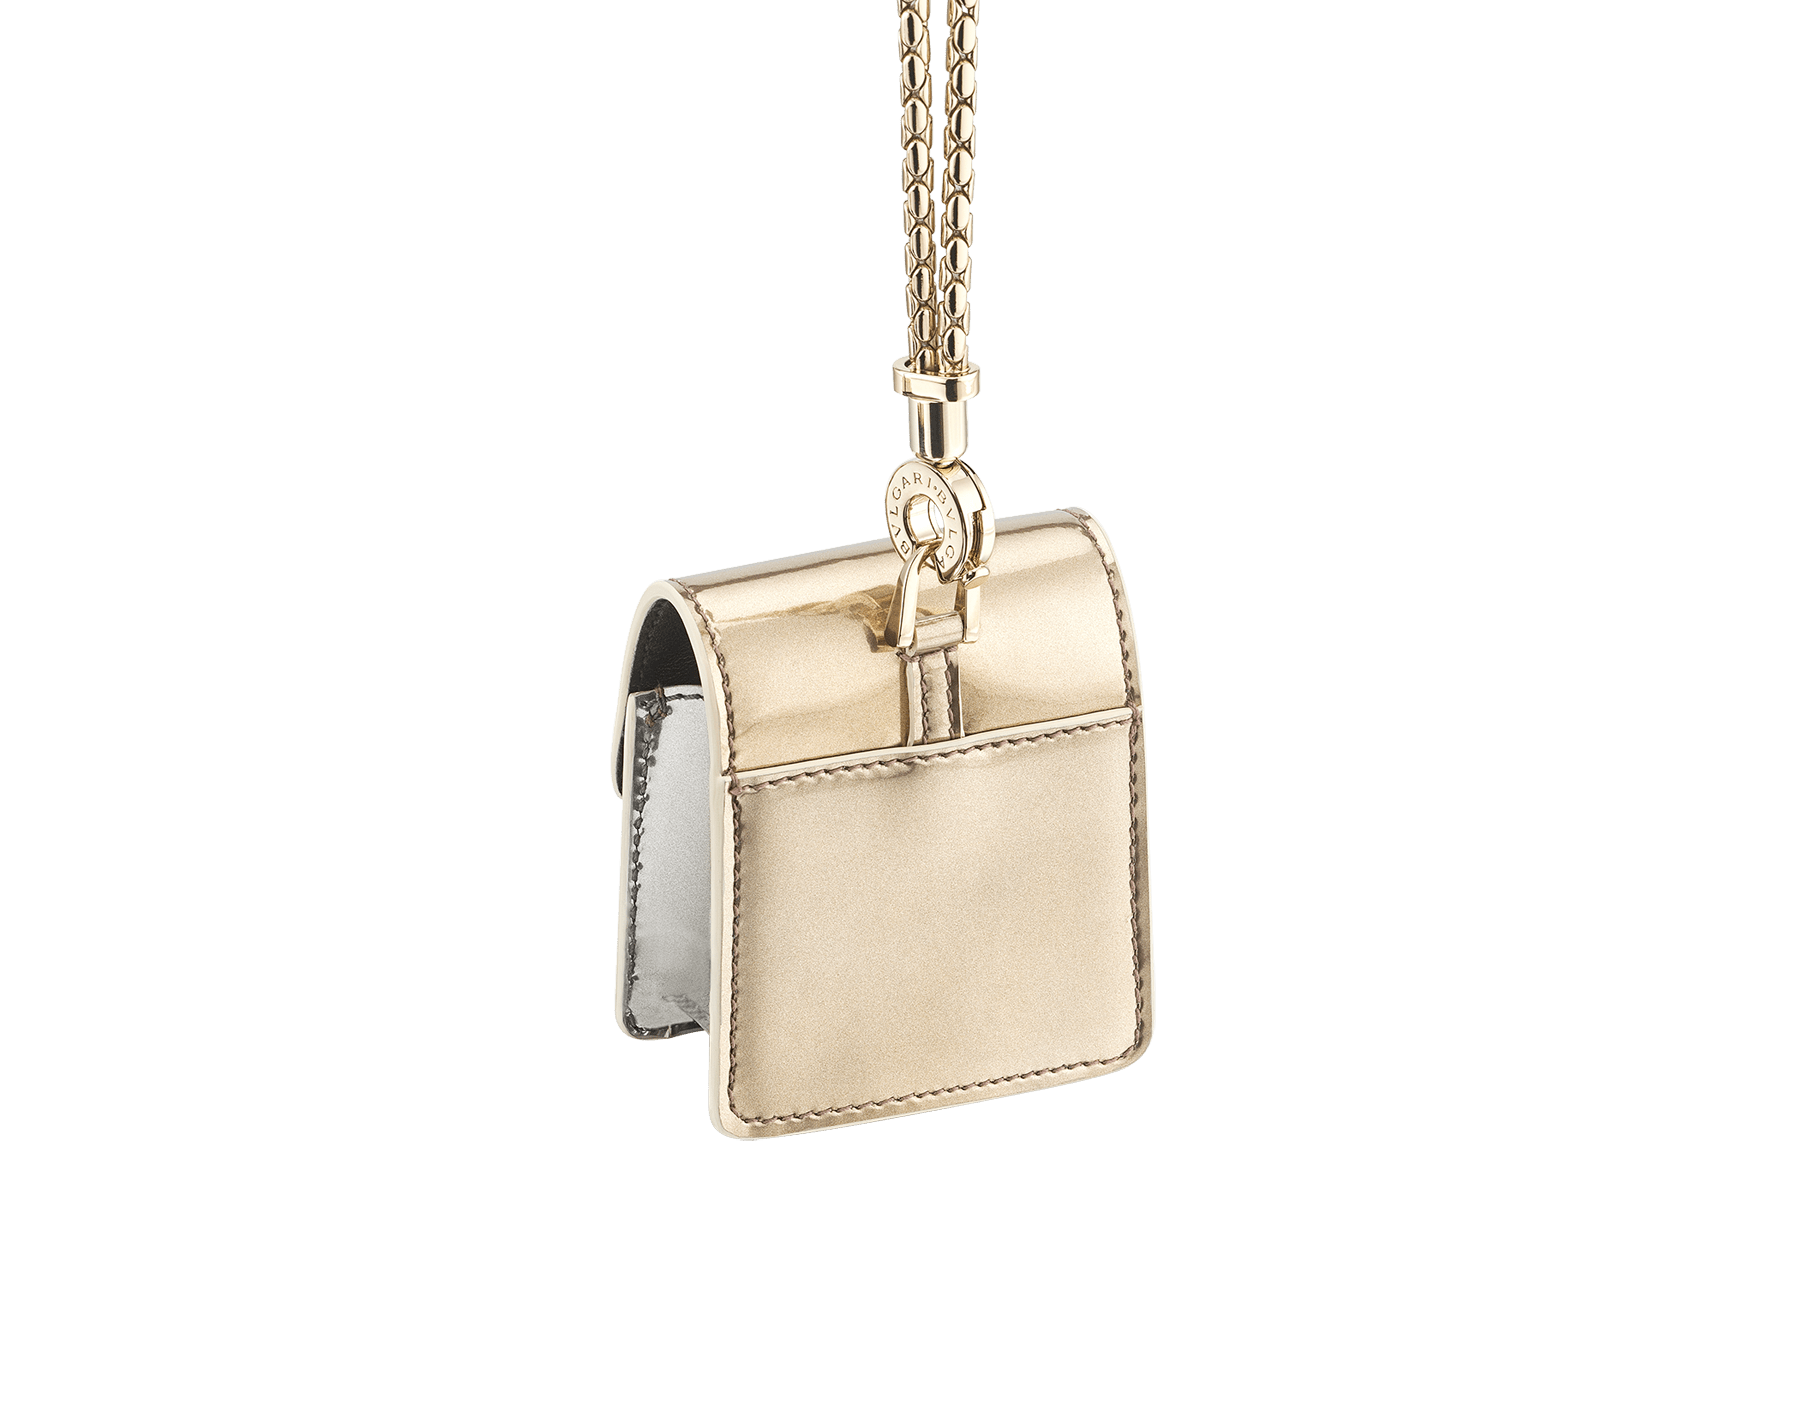 Serpenti Forever Holiday Season AirPods holder in antique bronze and silver brushed metallic calf leather. Snakehead closure in light gold plated brass embellished with black and glitter silver enamel, and black onyx eyes. 289489 image 3